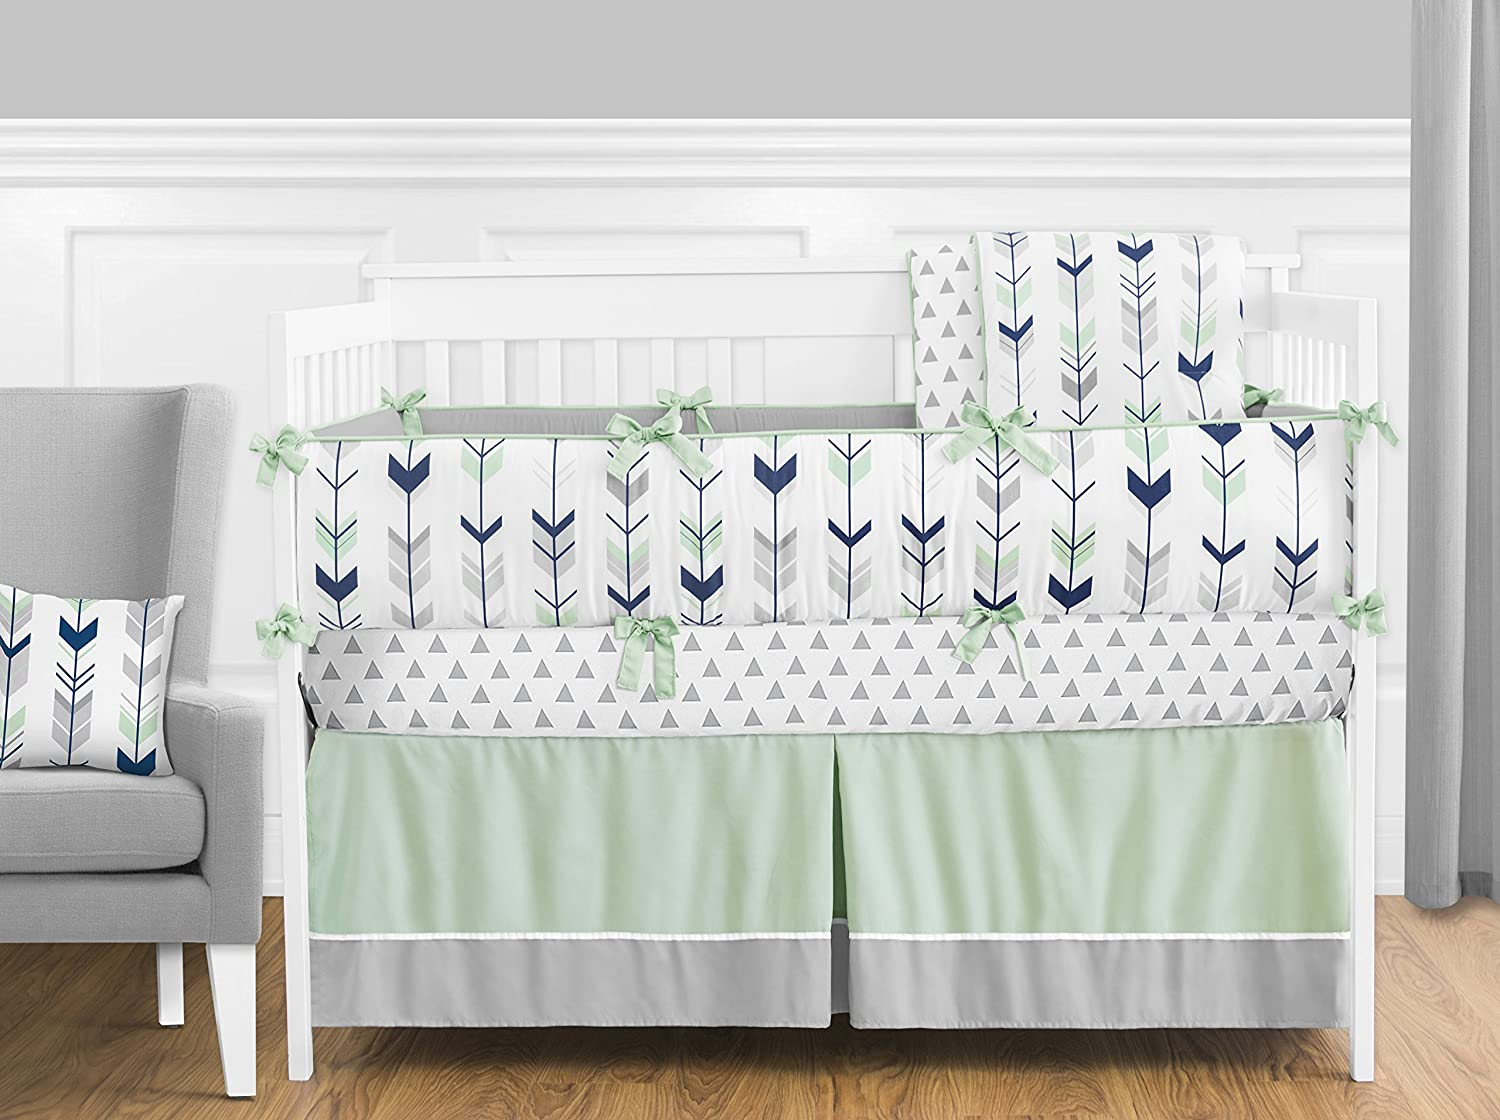 Amazon Sweet Jojo Designs Fitted Crib Sheet For Grey Navy And Mint Woodland Arrow Baby Toddler Bedding Set Collection